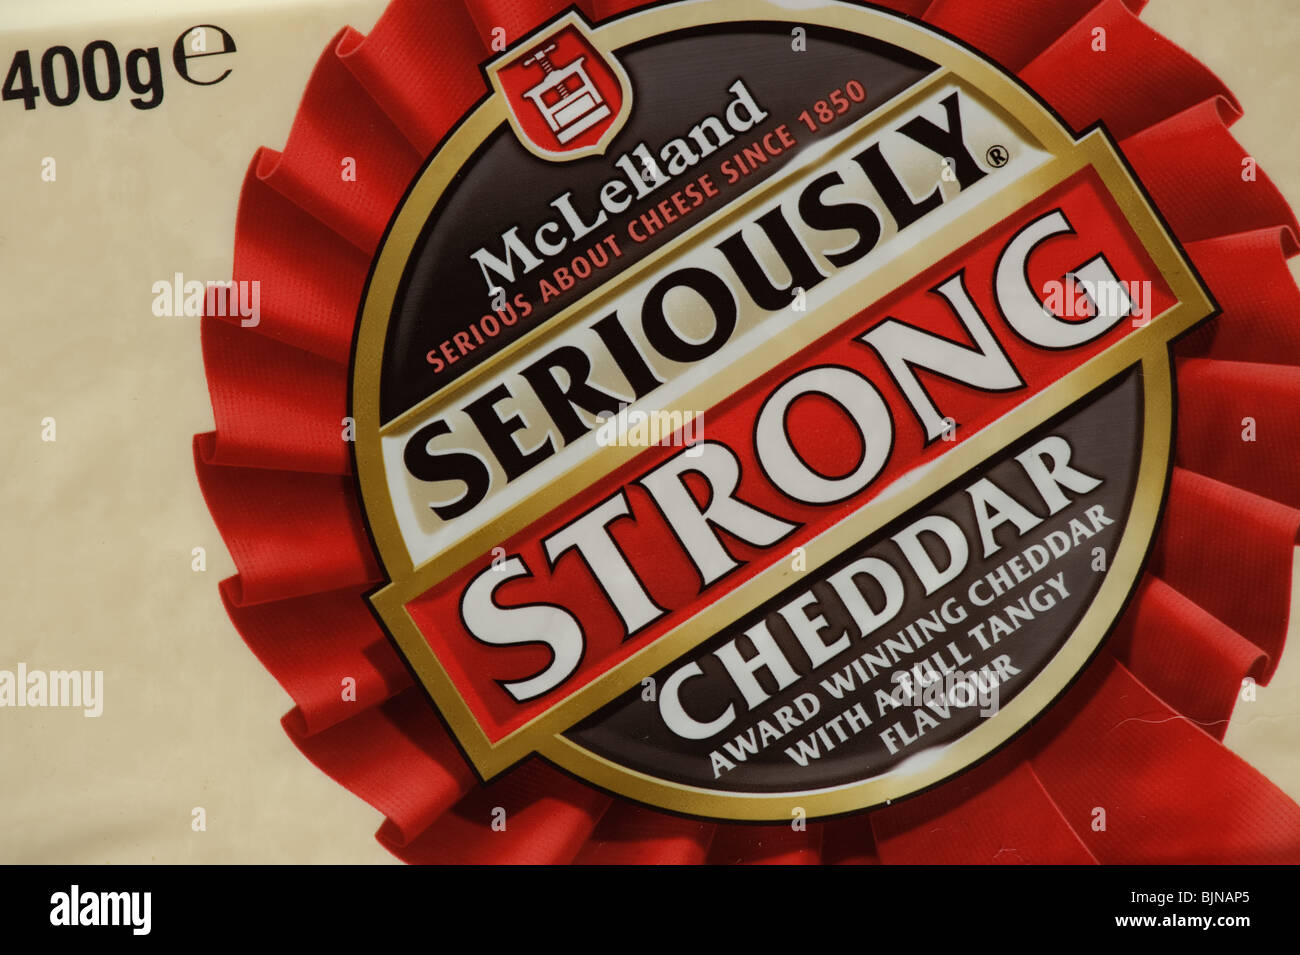 A 400g pack of McLellend seriously strong cheddar cheese, UK Stock Photo